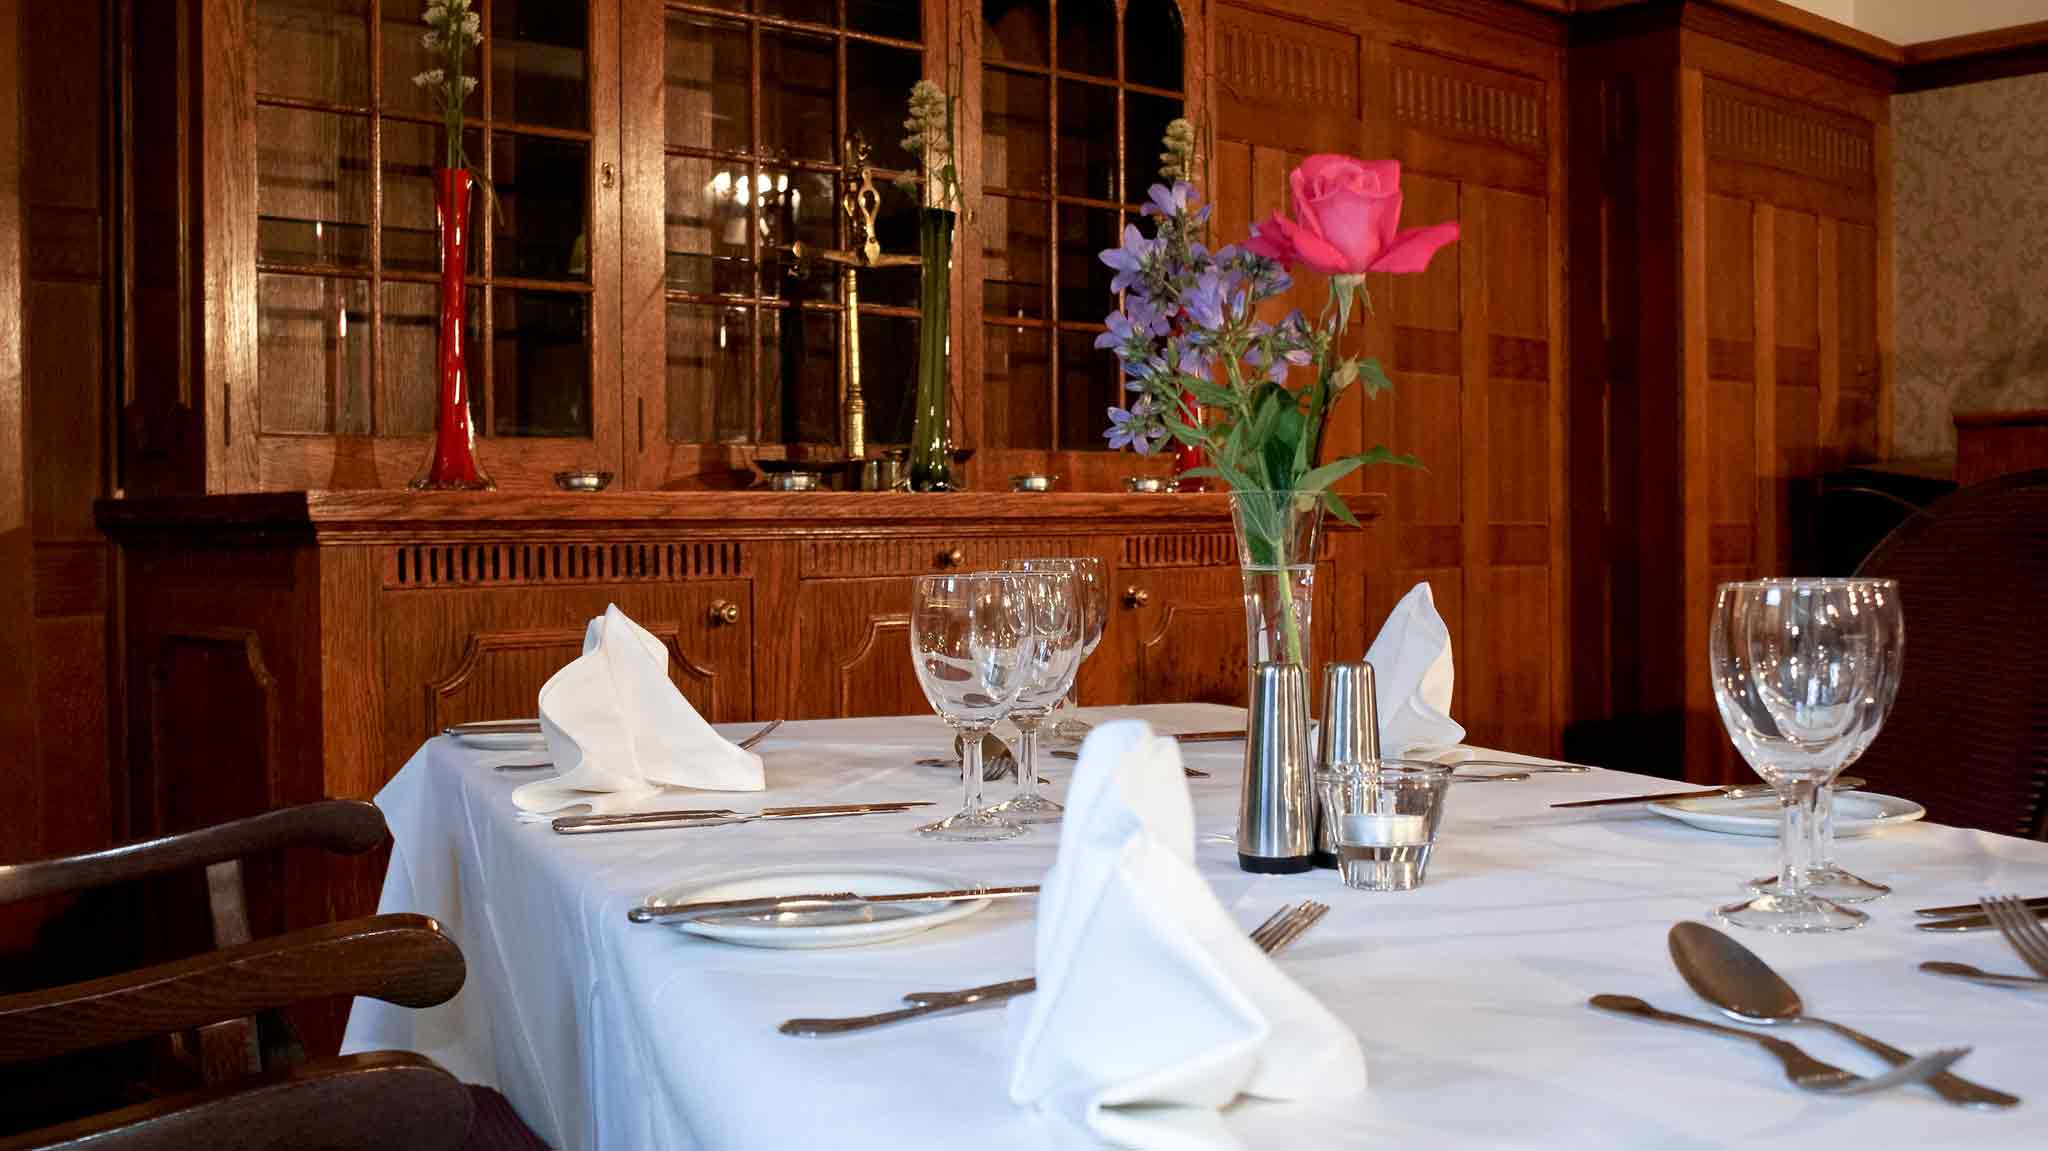 Hotel Mercure Whately Hall Banbury Gastronomy